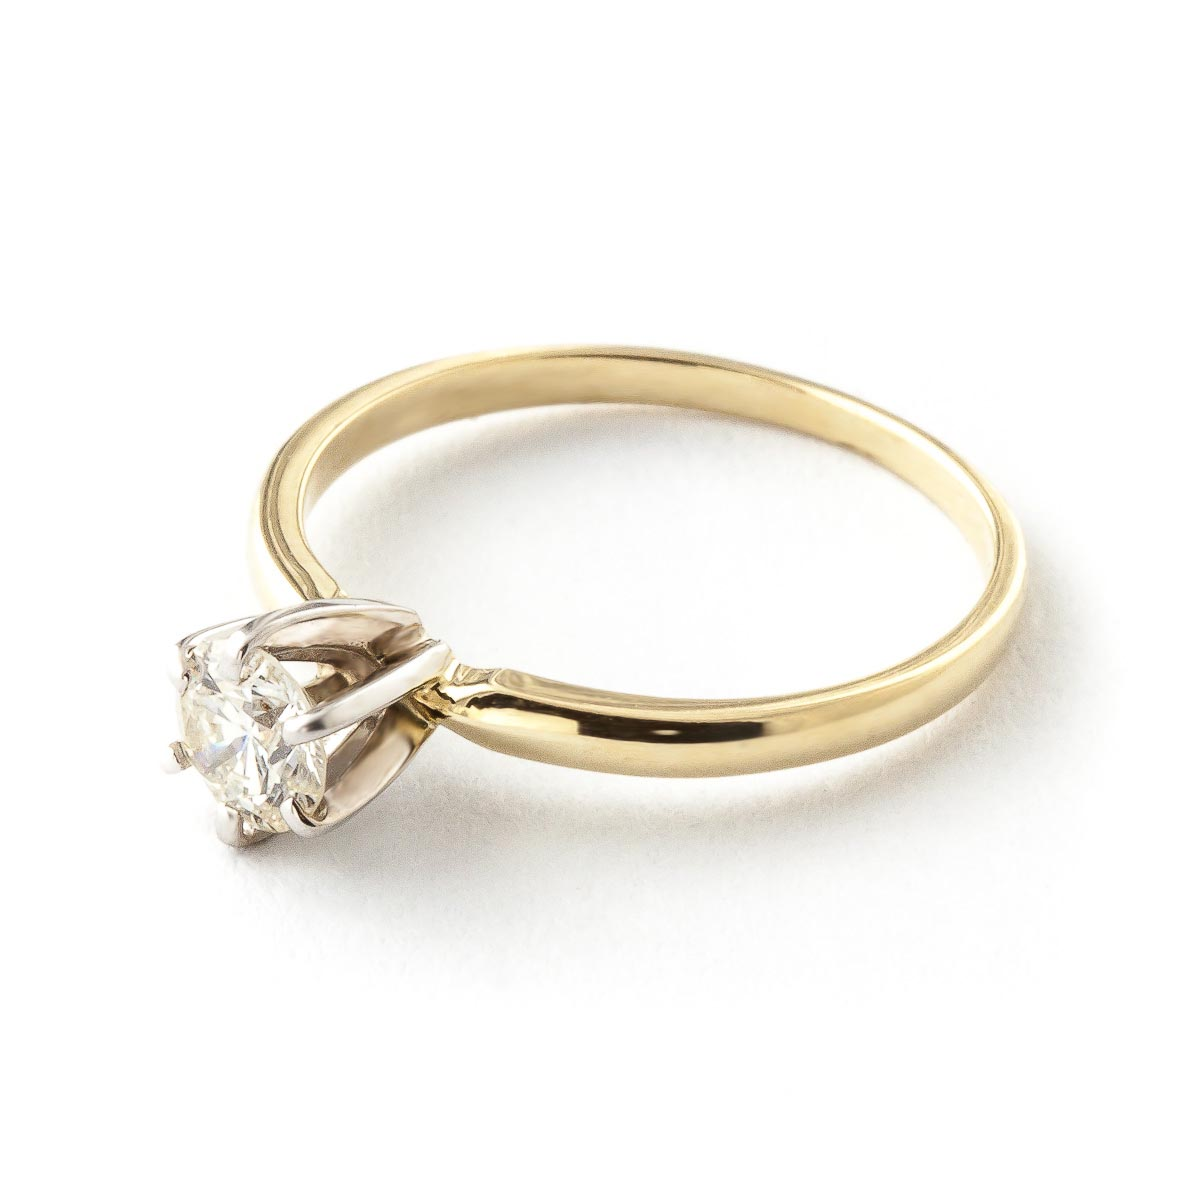 Round Brilliant Cut Diamond Solitaire Ring in 14K Gold